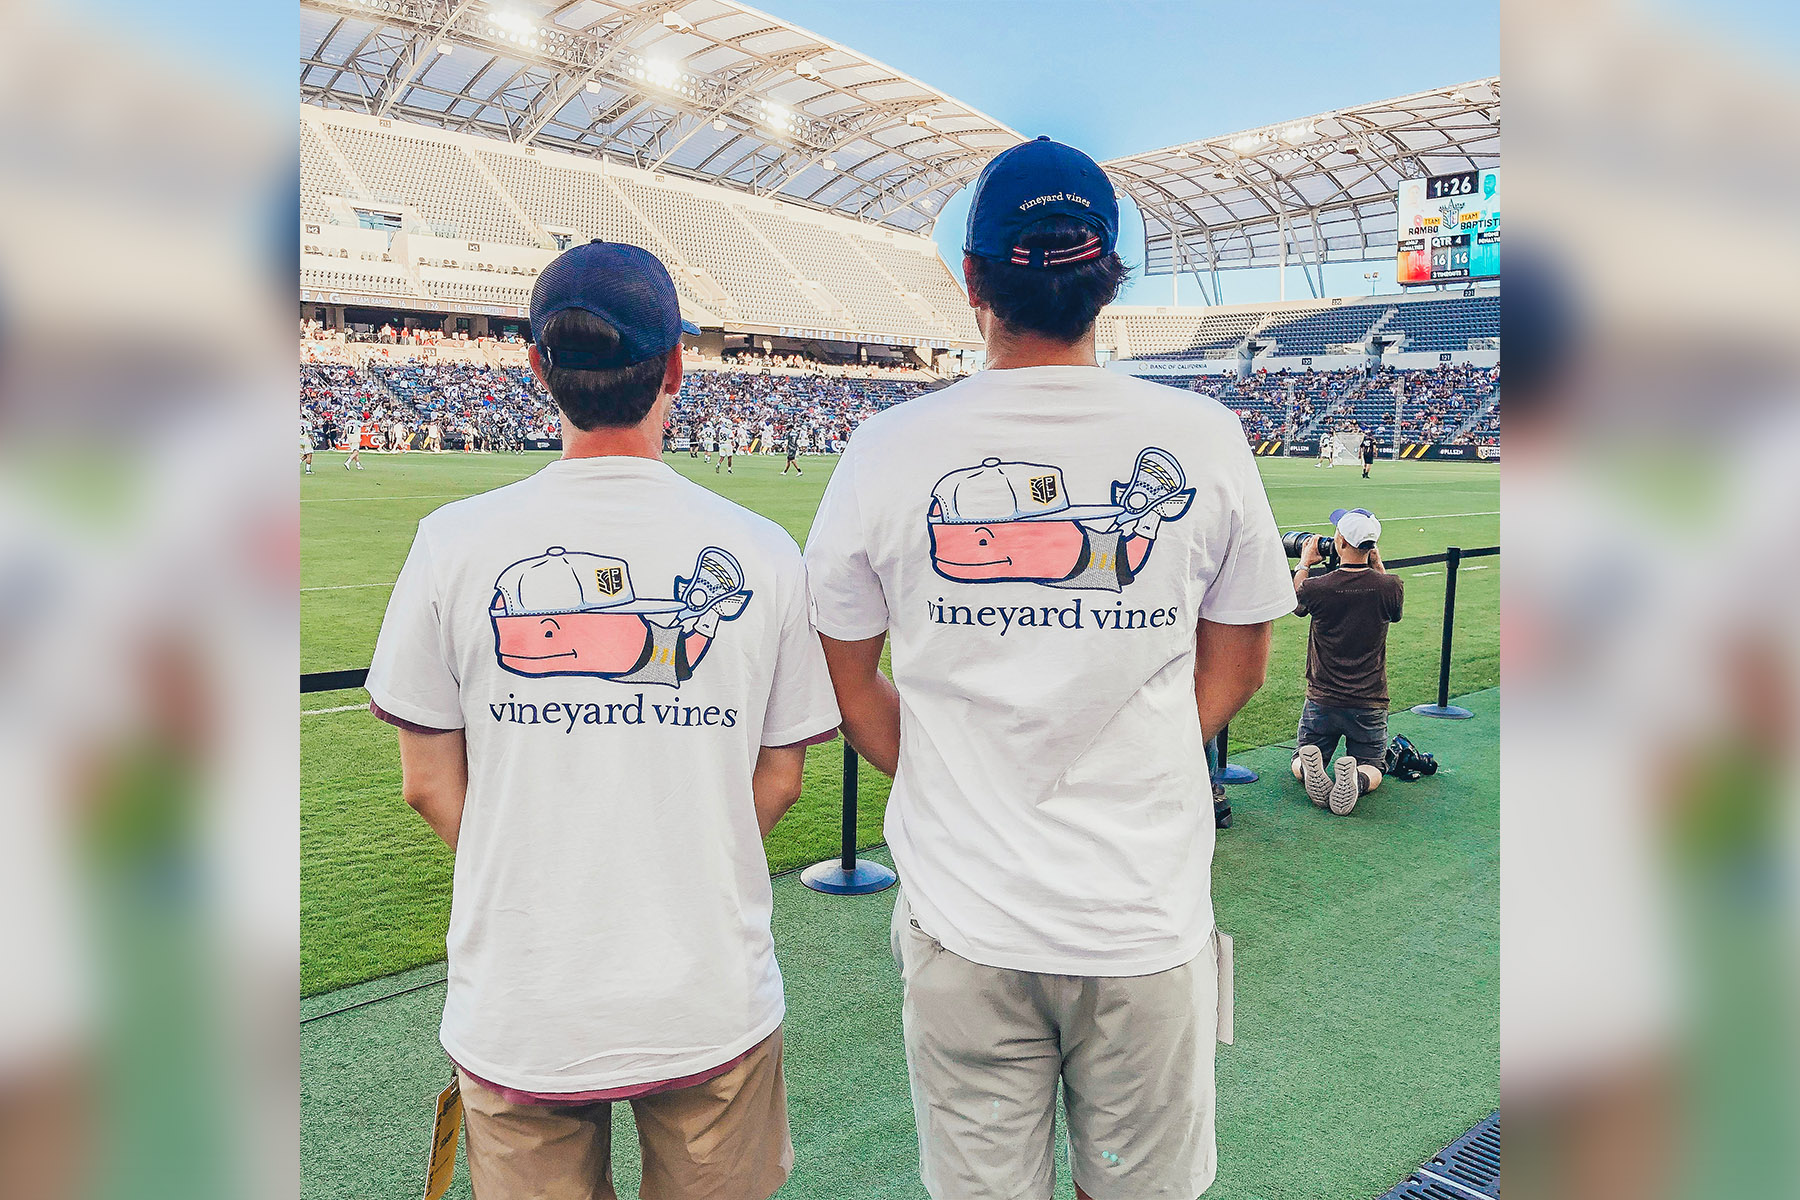 Vineyard Vines' and Premier Lacrosse League sign a deal.